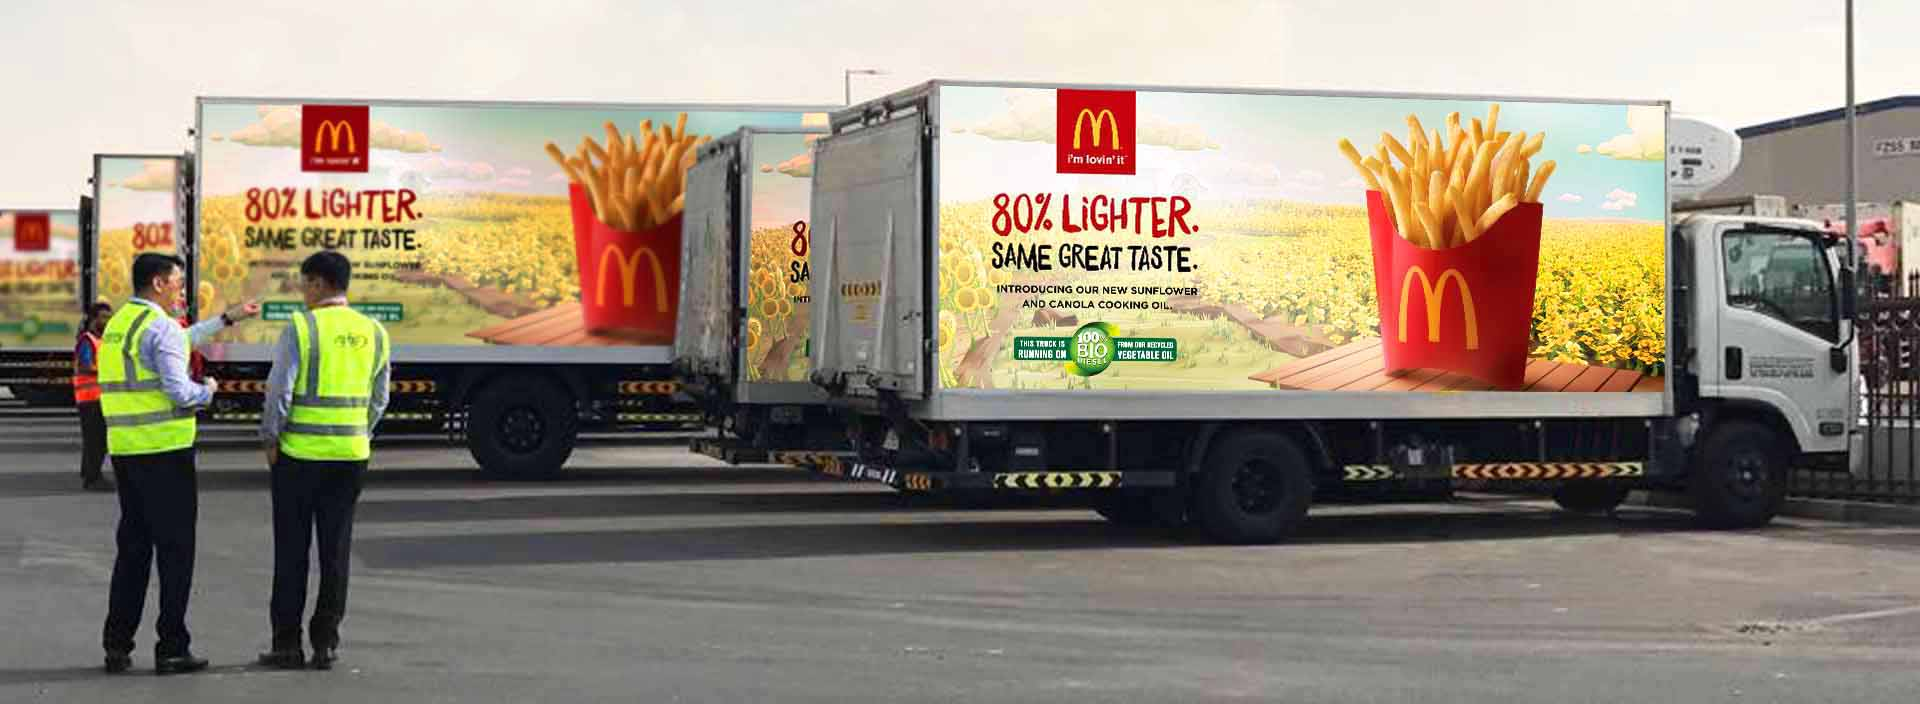 delivery mcdonalds recycles - 960×500